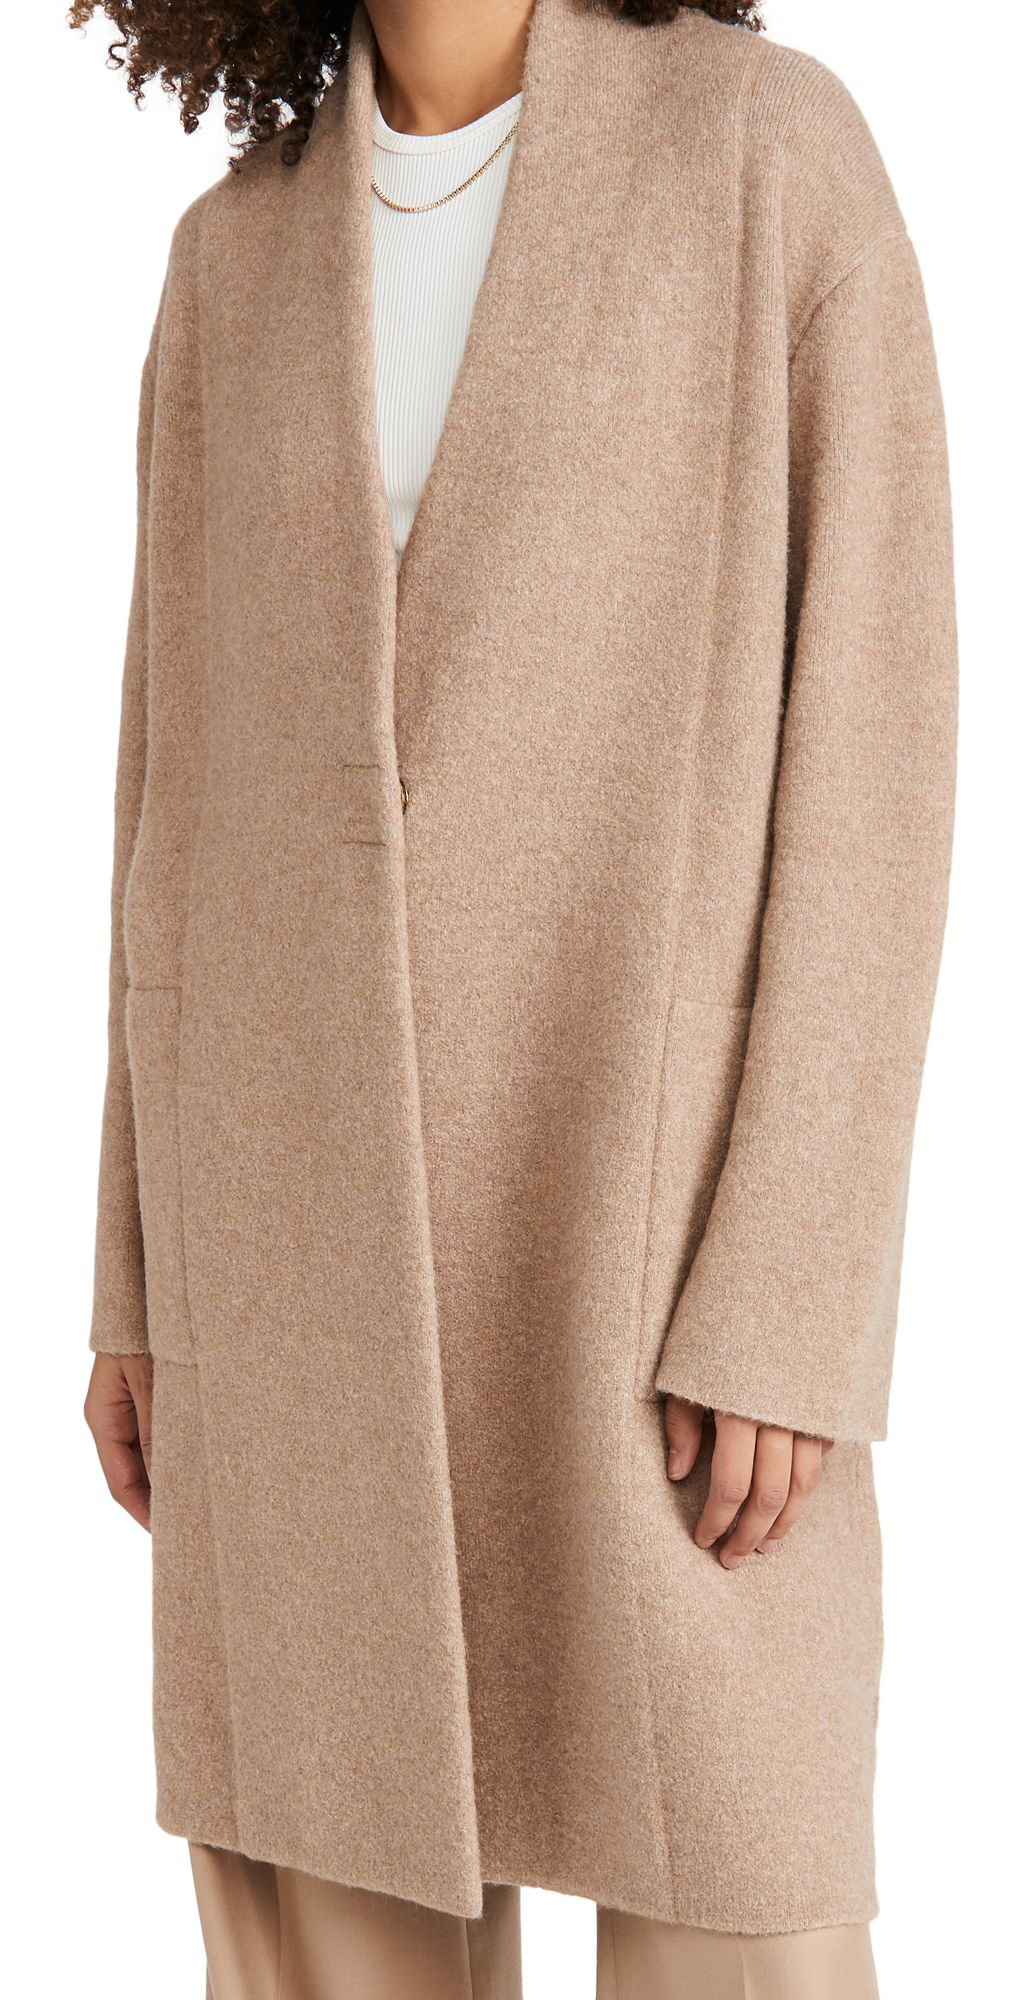 Vince Collarless Cardigan Coat